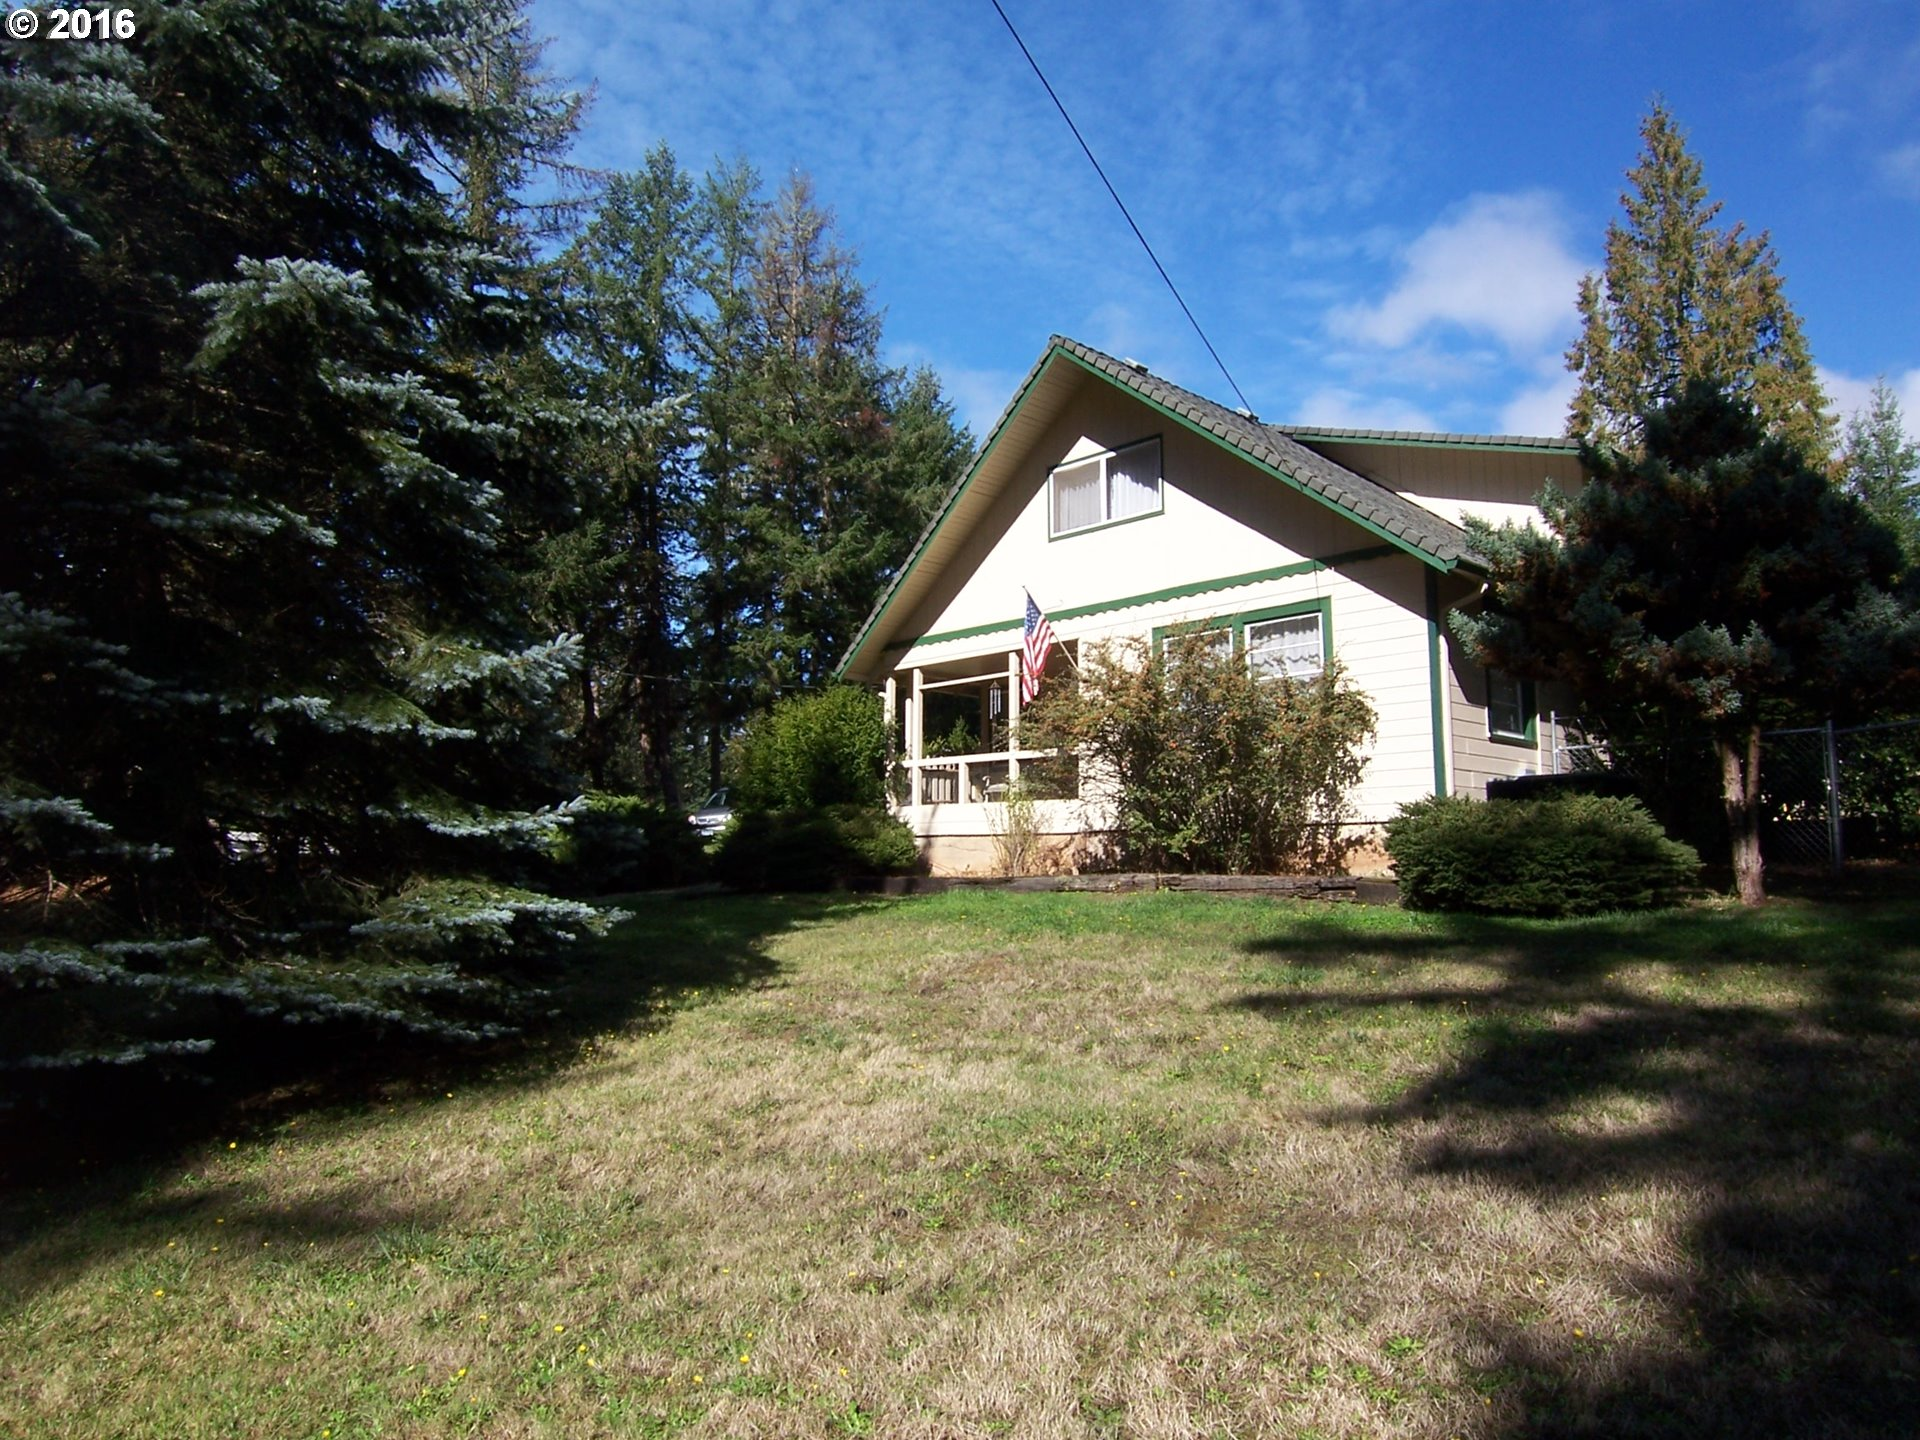 1300 BENNETT CREEK RD, Cottage Grove, OR 97424